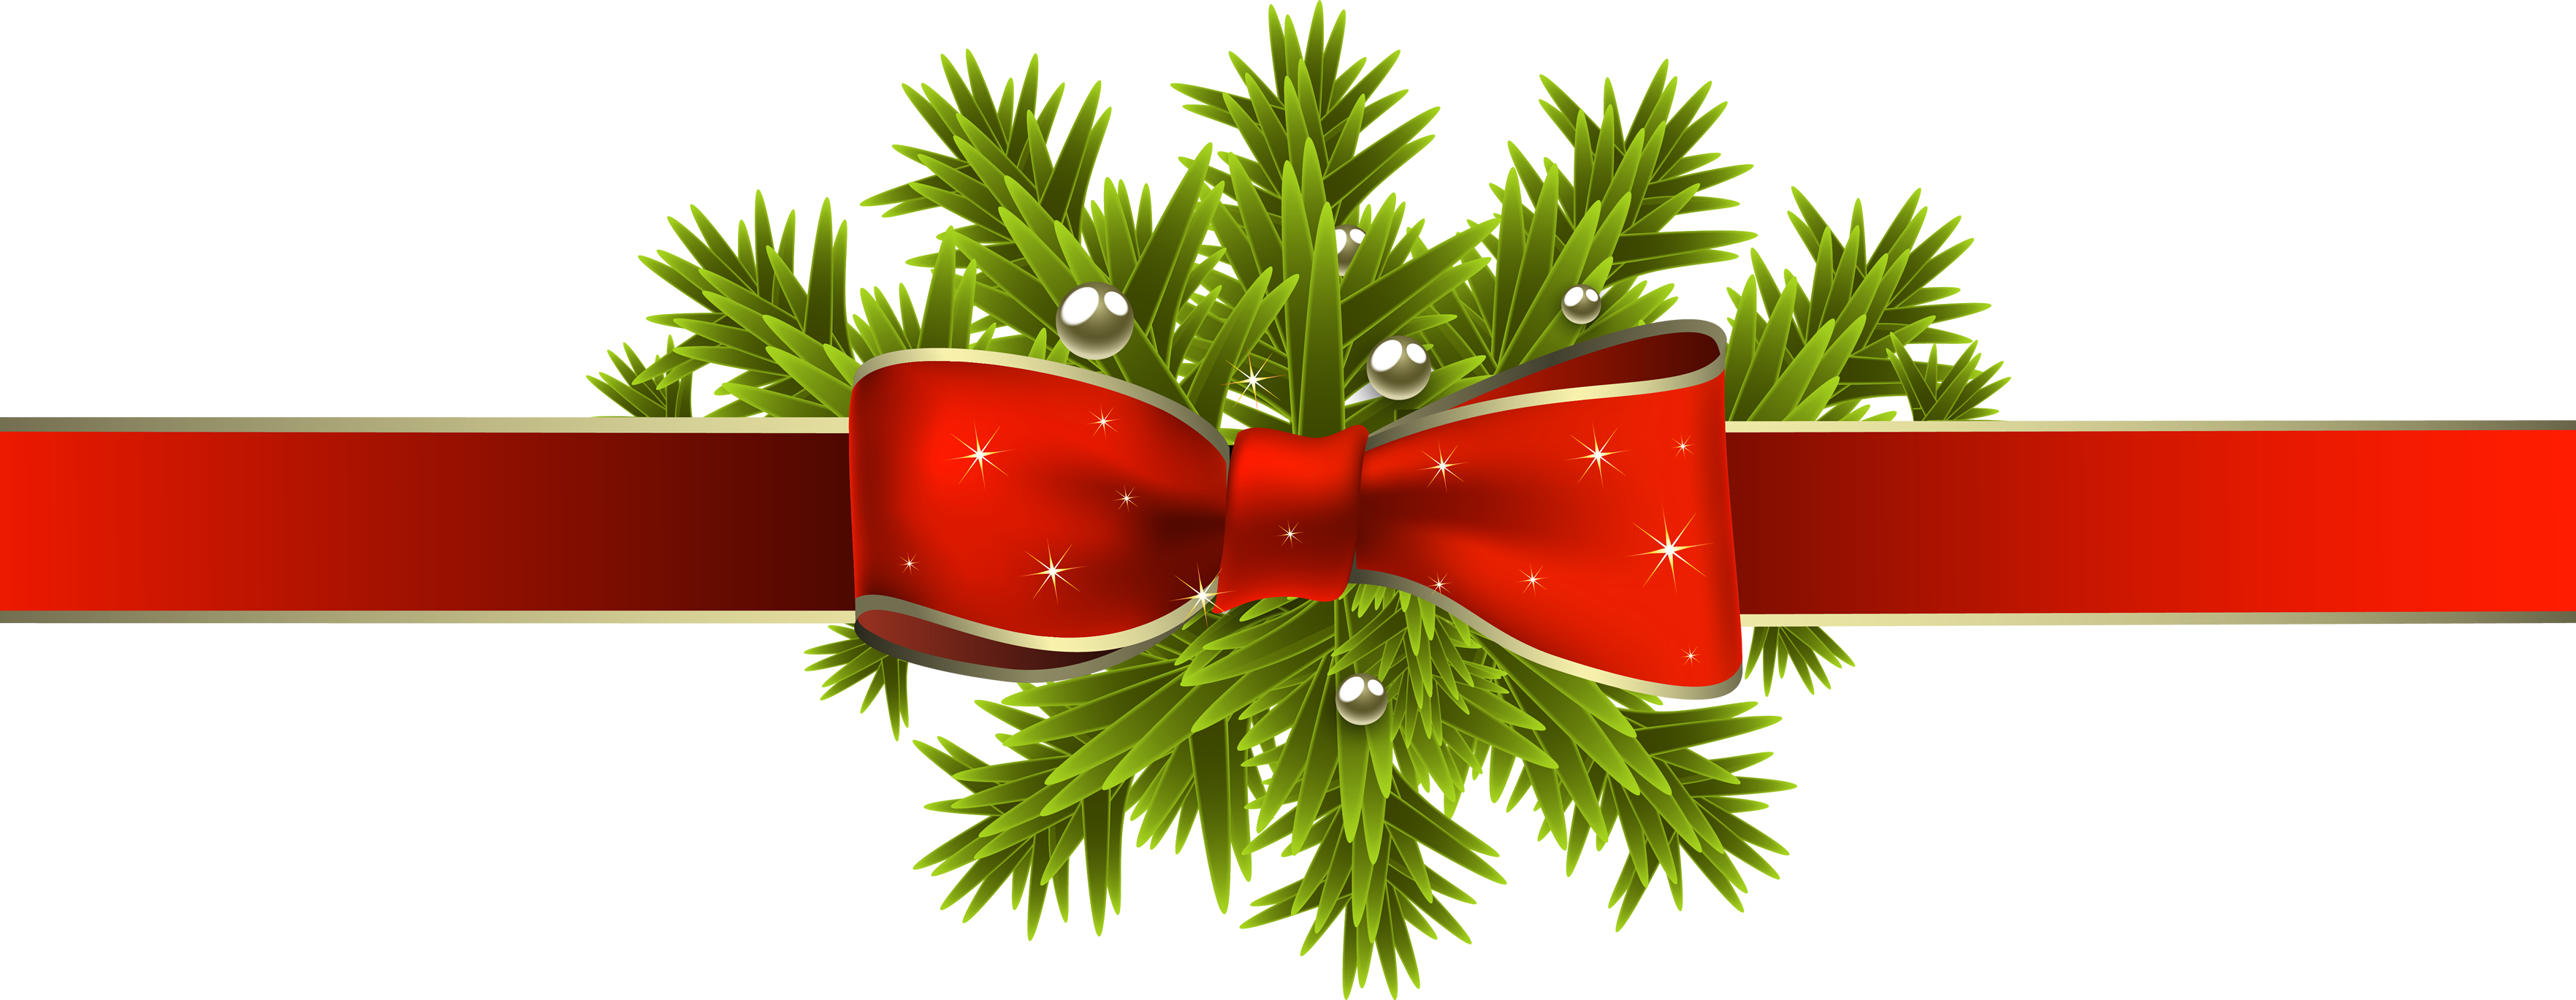 clipart png christmas clipart png christmas transparent free for download on webstockreview 2020 clipart png christmas clipart png